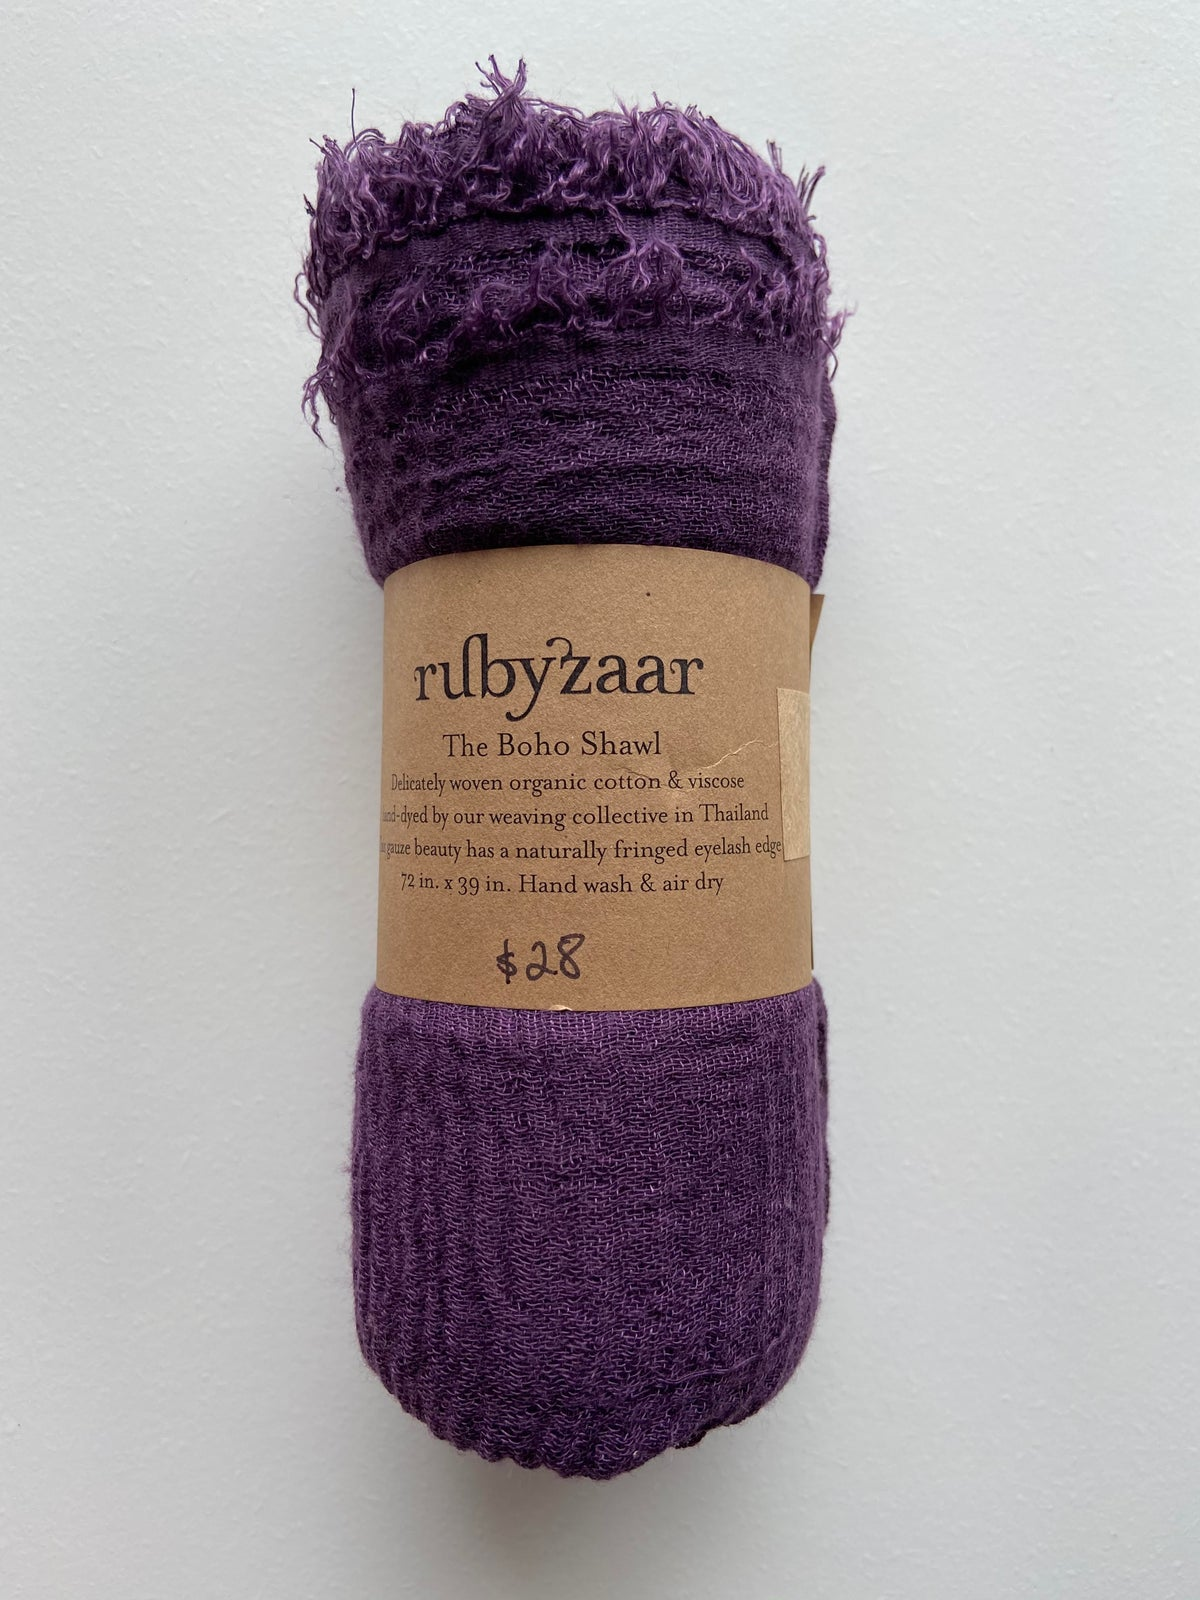 Image of Rubyzaar Boho Organic Cotton Blend Scarf - warm tones